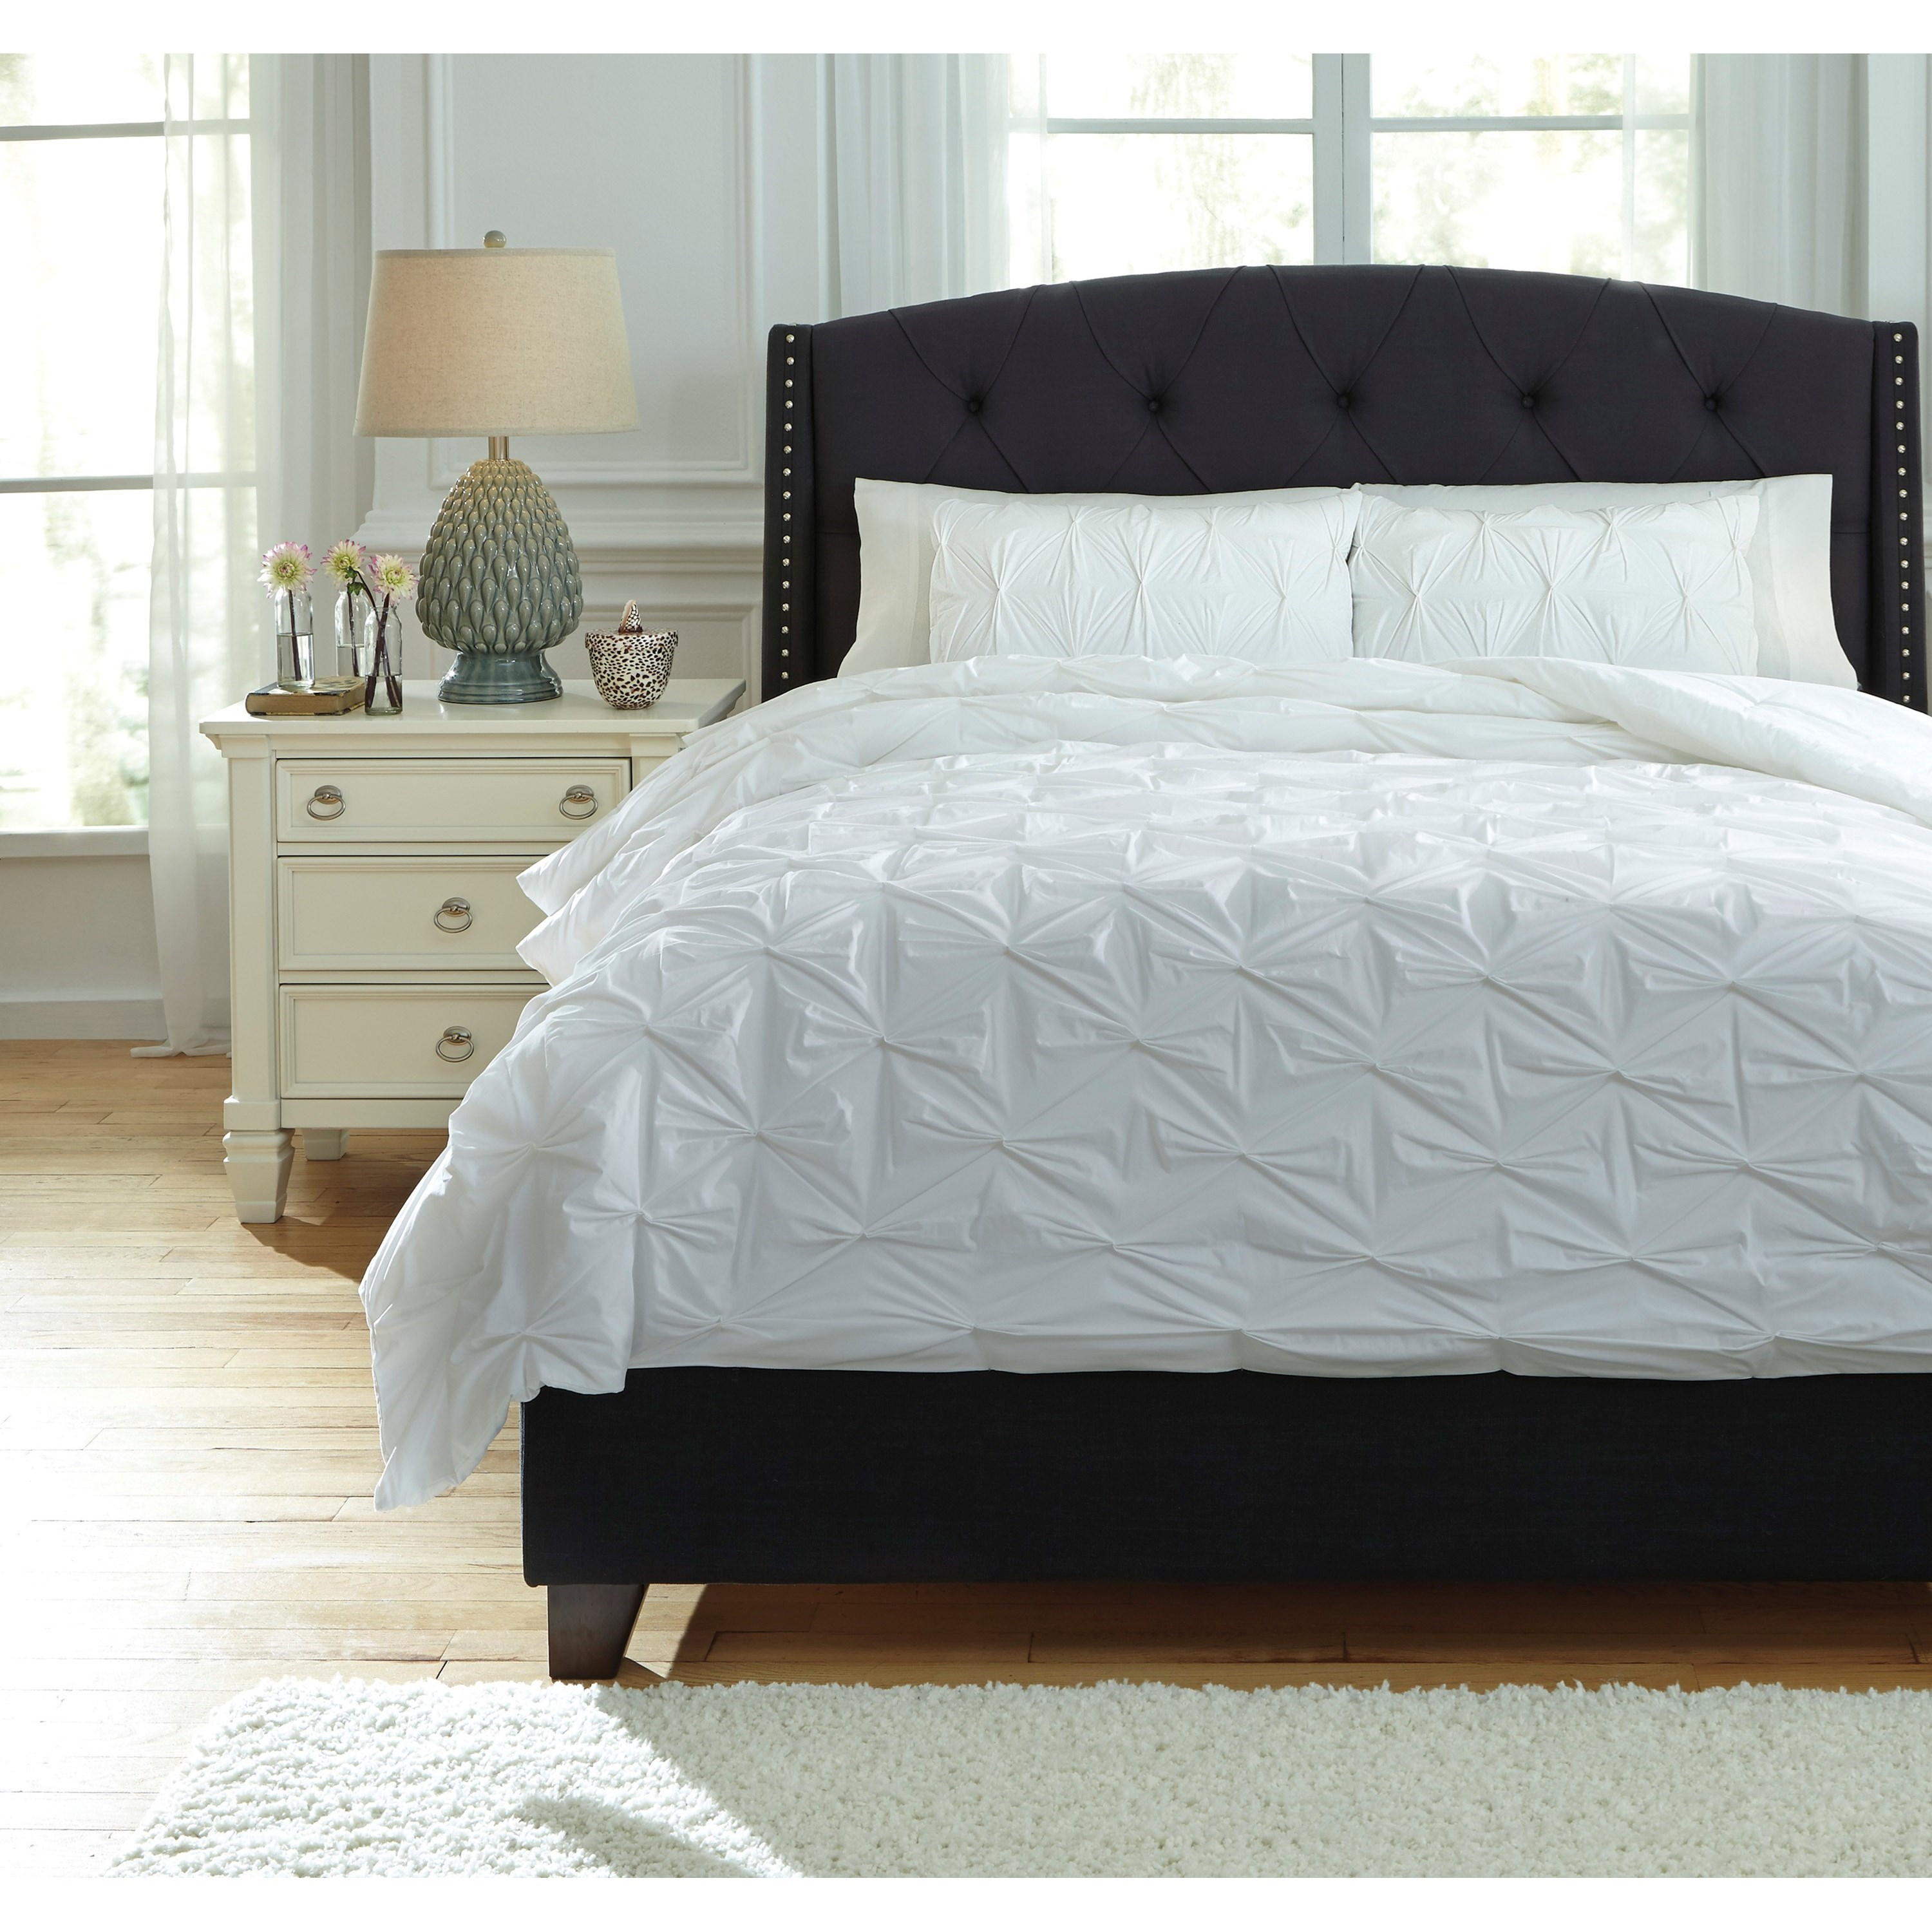 Signature Design by Ashley Bedding Sets King Rimy White Comforter Set - Item Number: Q756013K